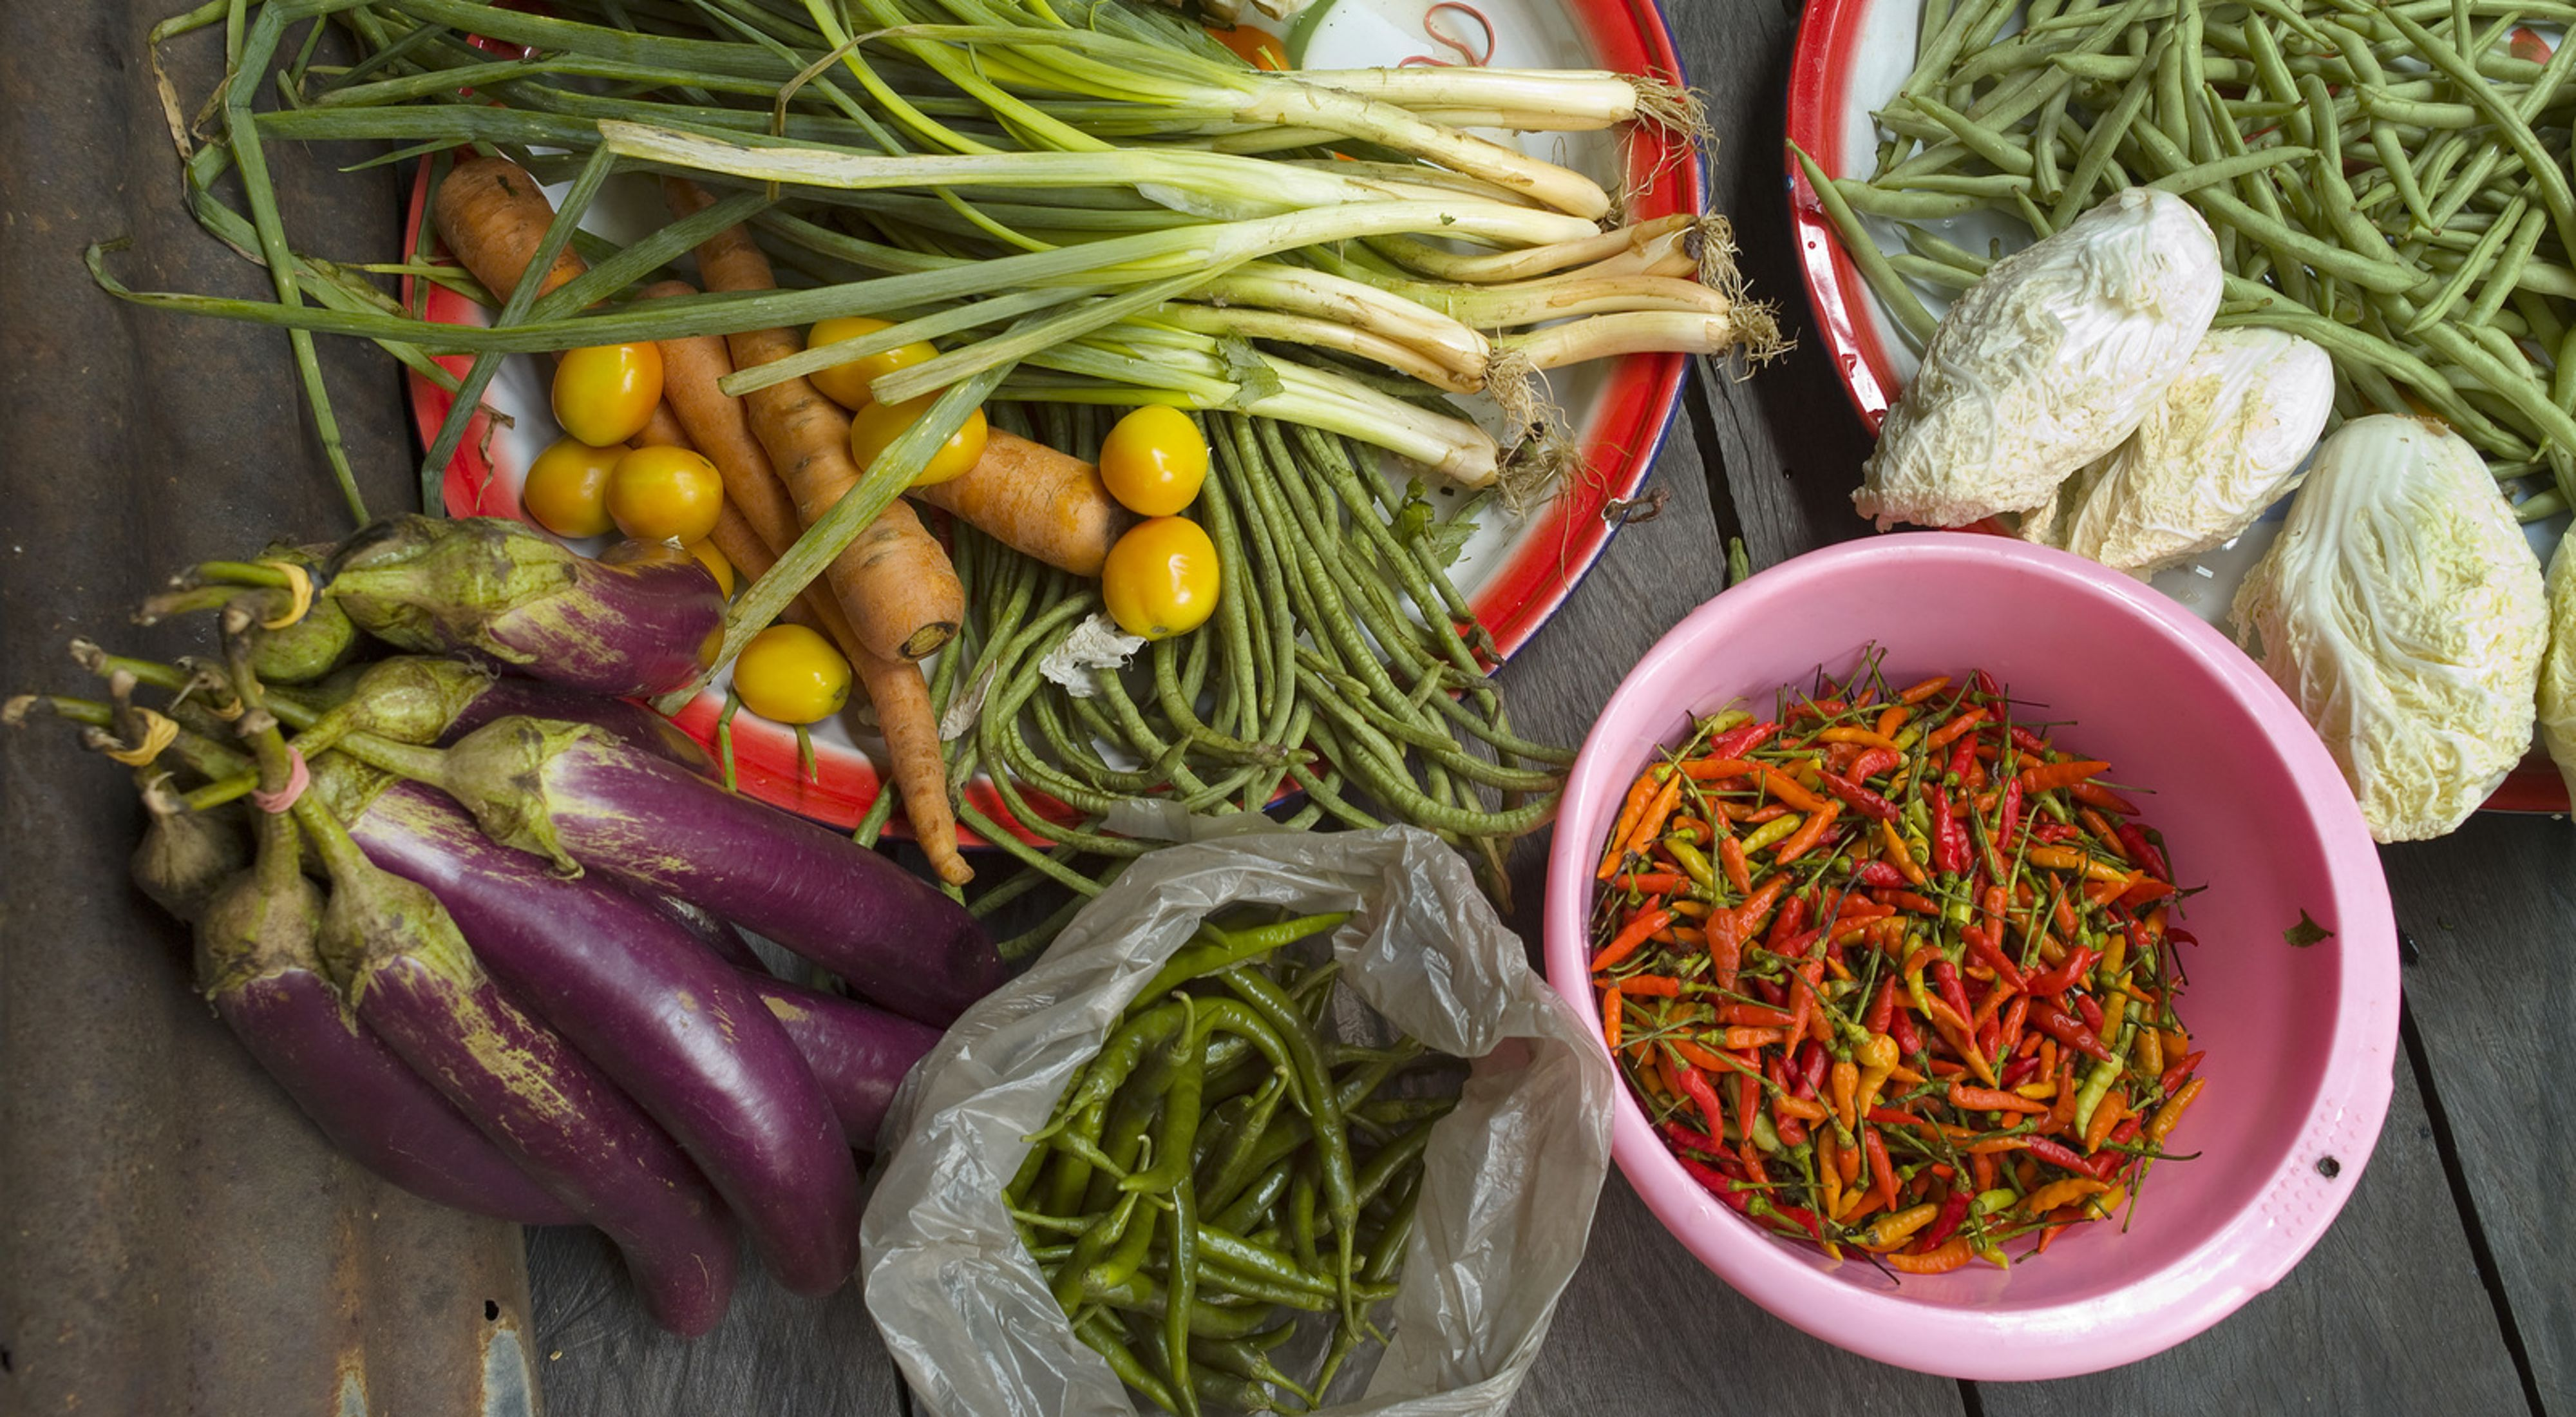 Locally grown and collected vegetables sorted for cooking at Long Laay (Long Laai) village which is situated on the banks of the Sagah River in the Bornean forest of the Berau district, East Kalimantan, Borneo, Indonesia.